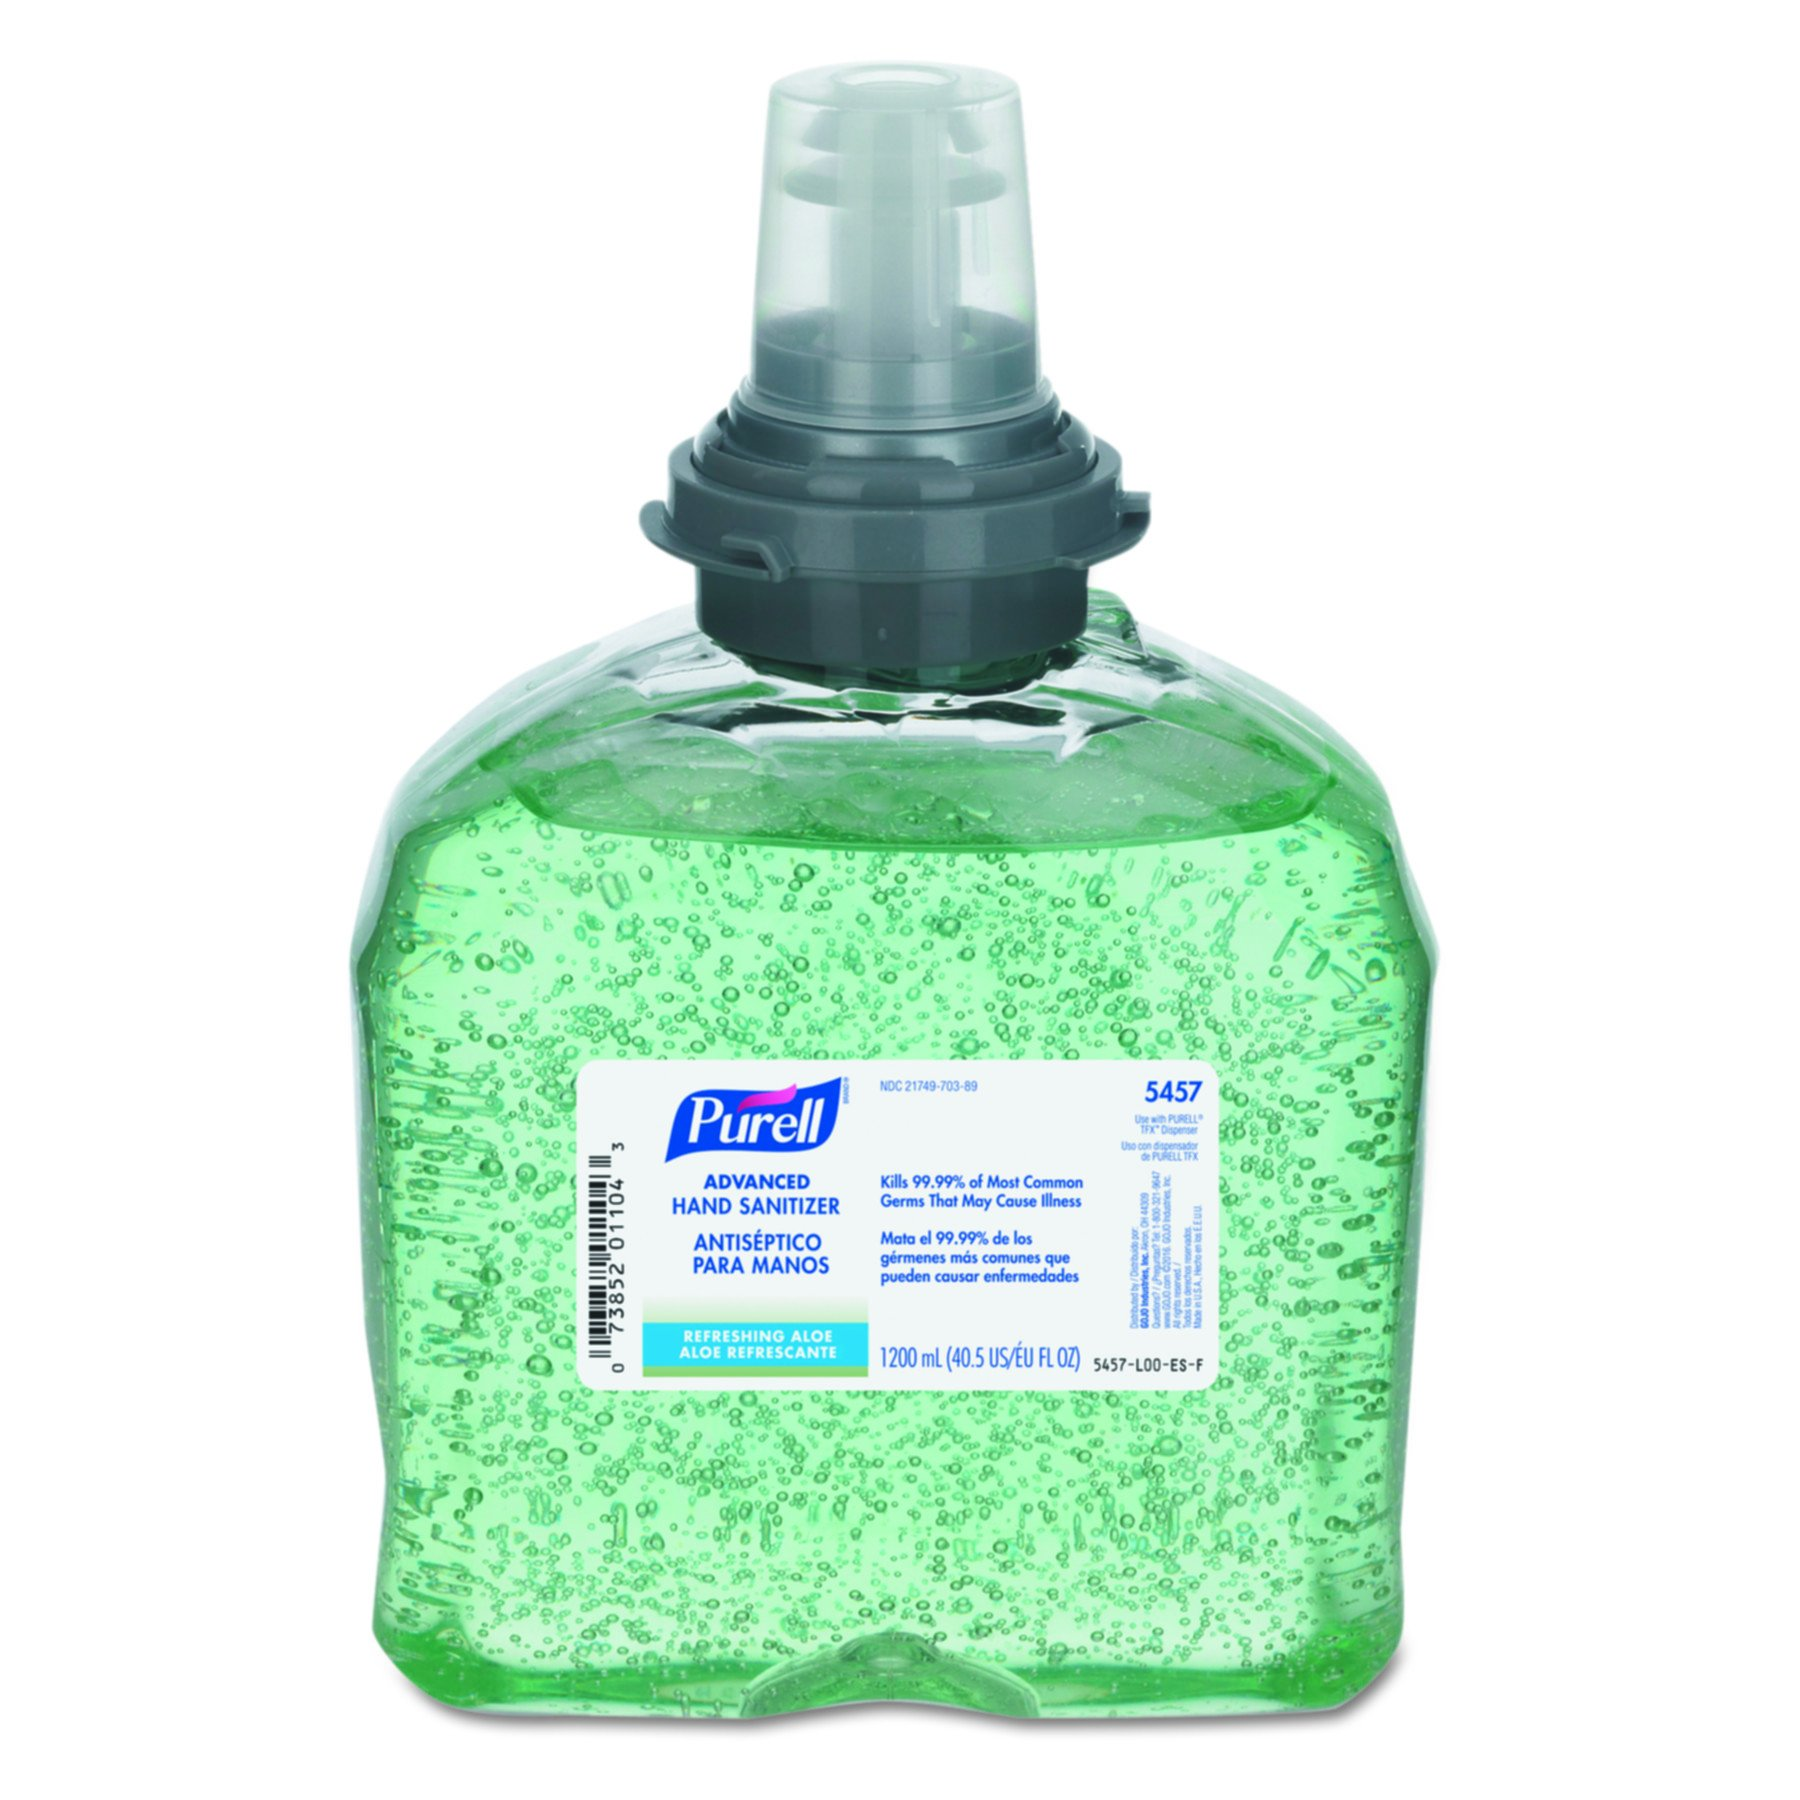 PURELL GOJ 5457-04 Advanced TFX Gel Instant Hand Sanitizer Refill with Aloe, 1200 mL, Clear (Pack of 4) by Purell